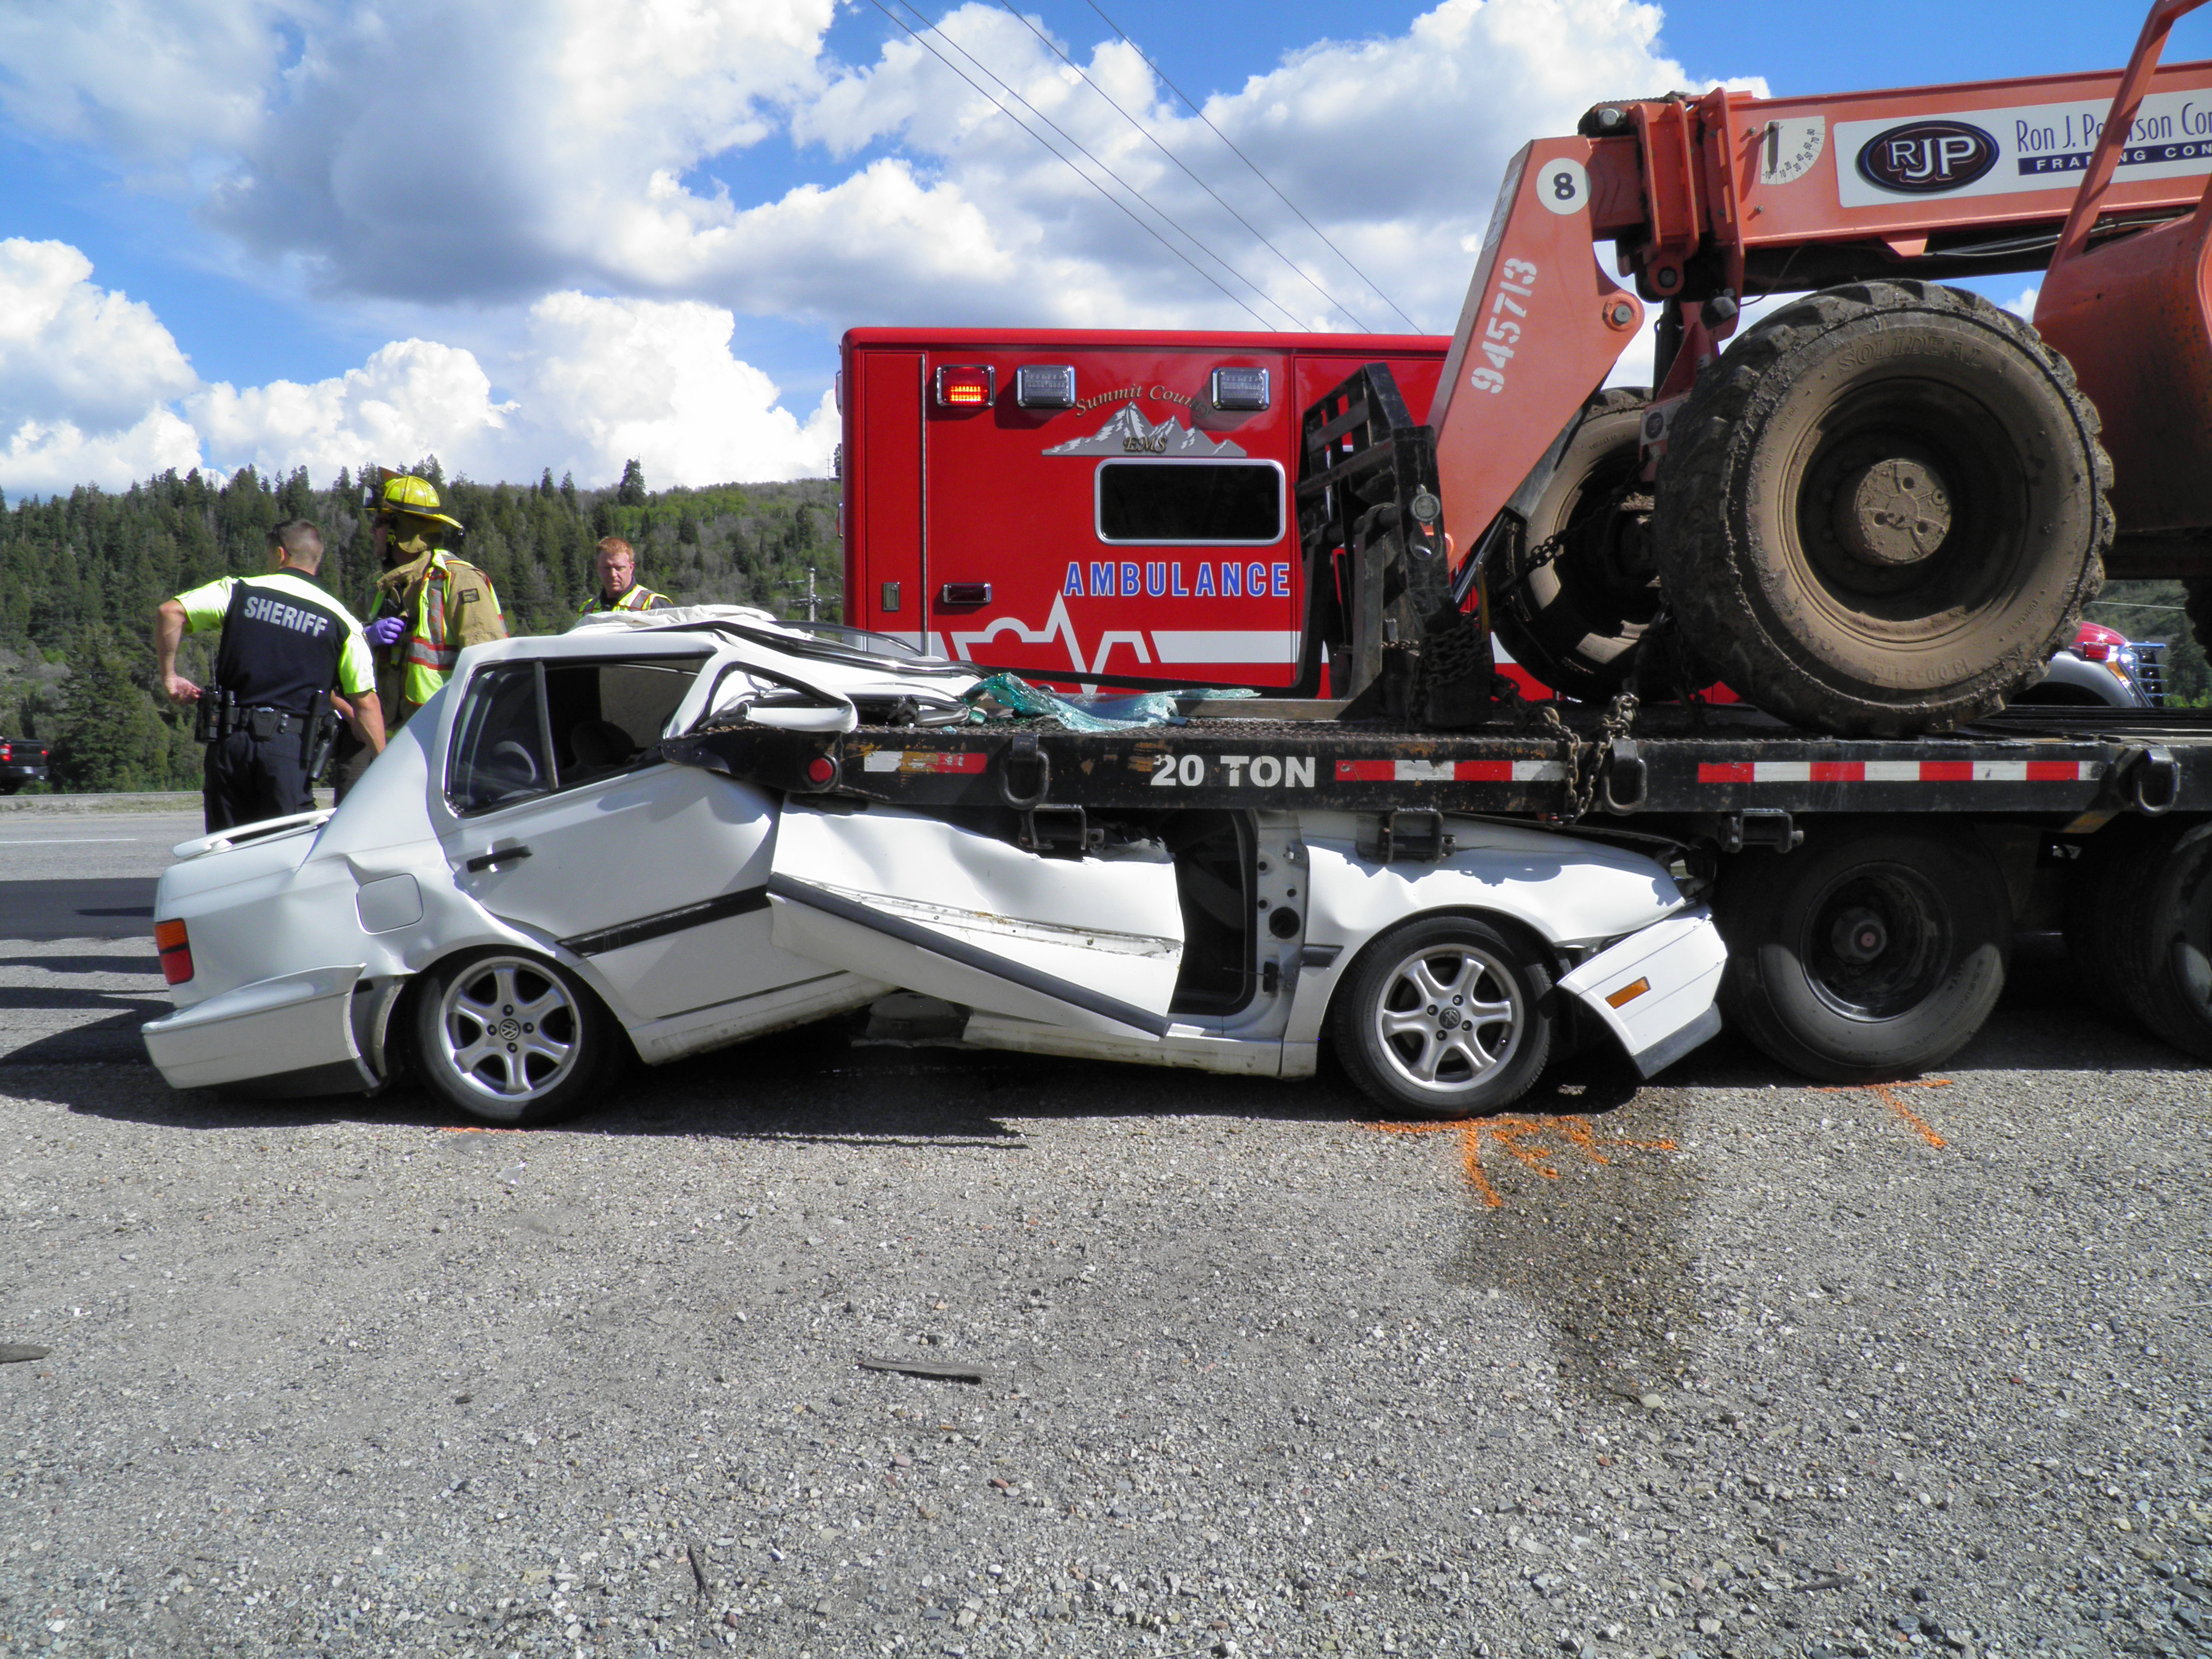 UPDATE: Two Killed In Summit County Crash Identified